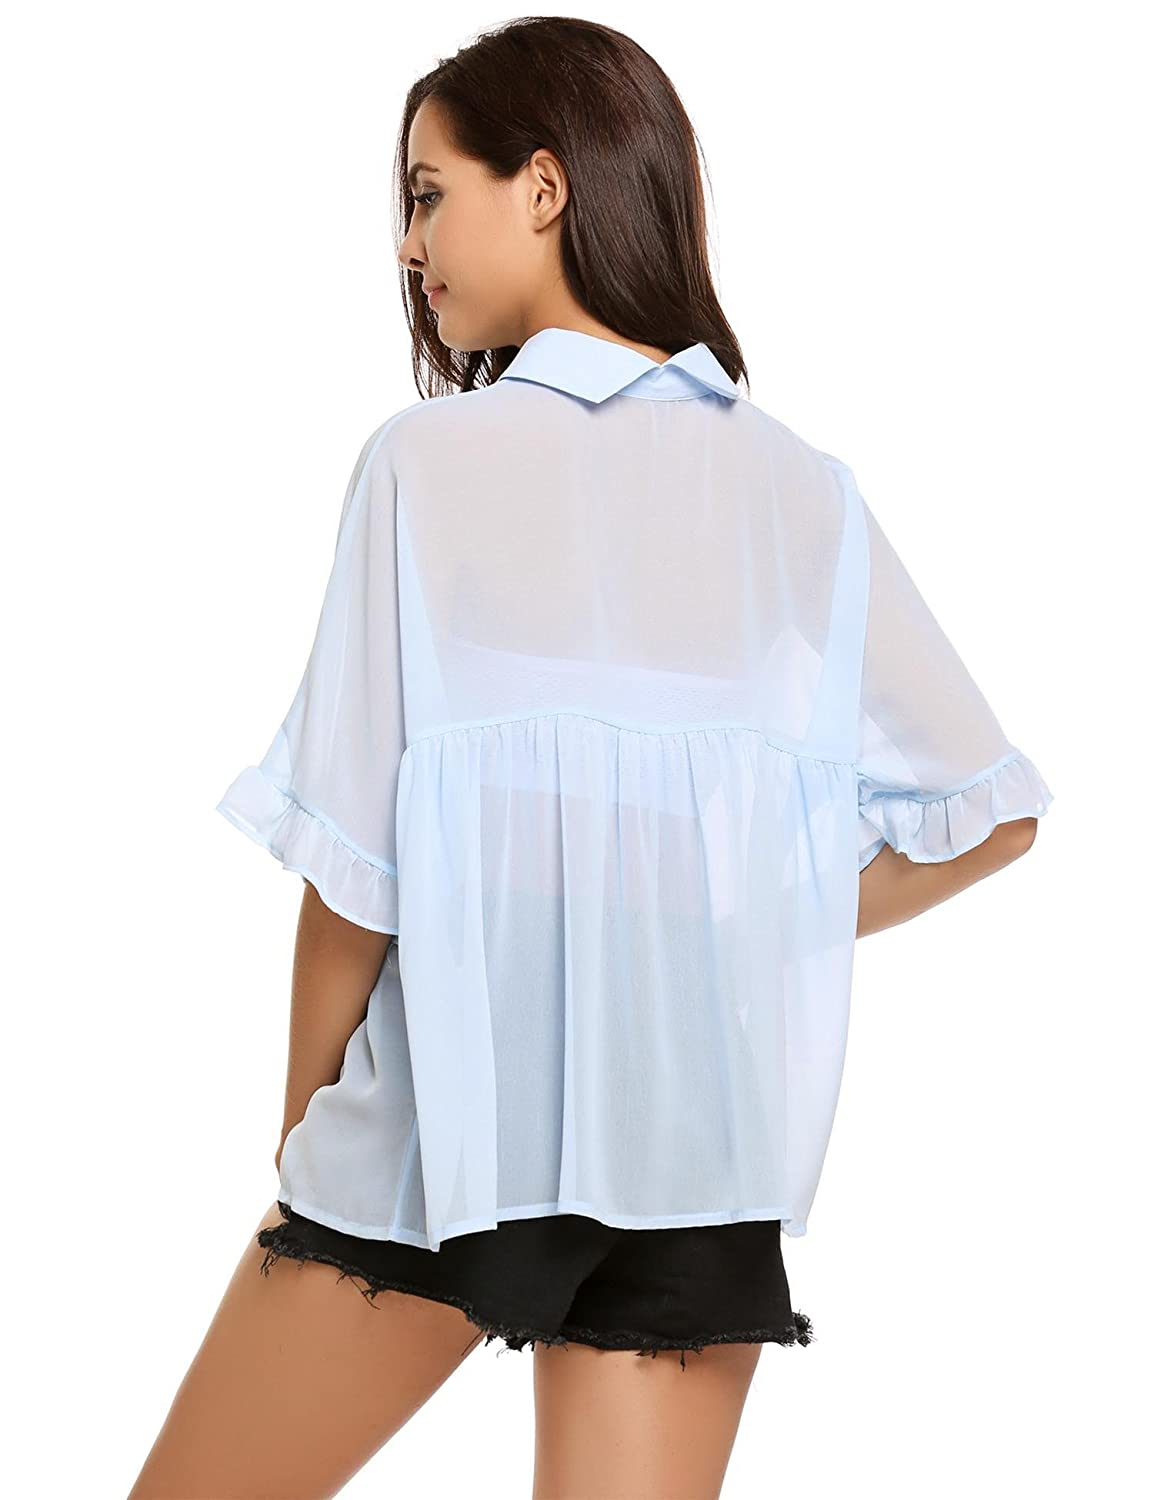 34e4a96073b56 Amazon.com  Zeagoo Women s Half Sleeve Collared Babydoll Tops Casual  Chiffon Blouses   Clothing